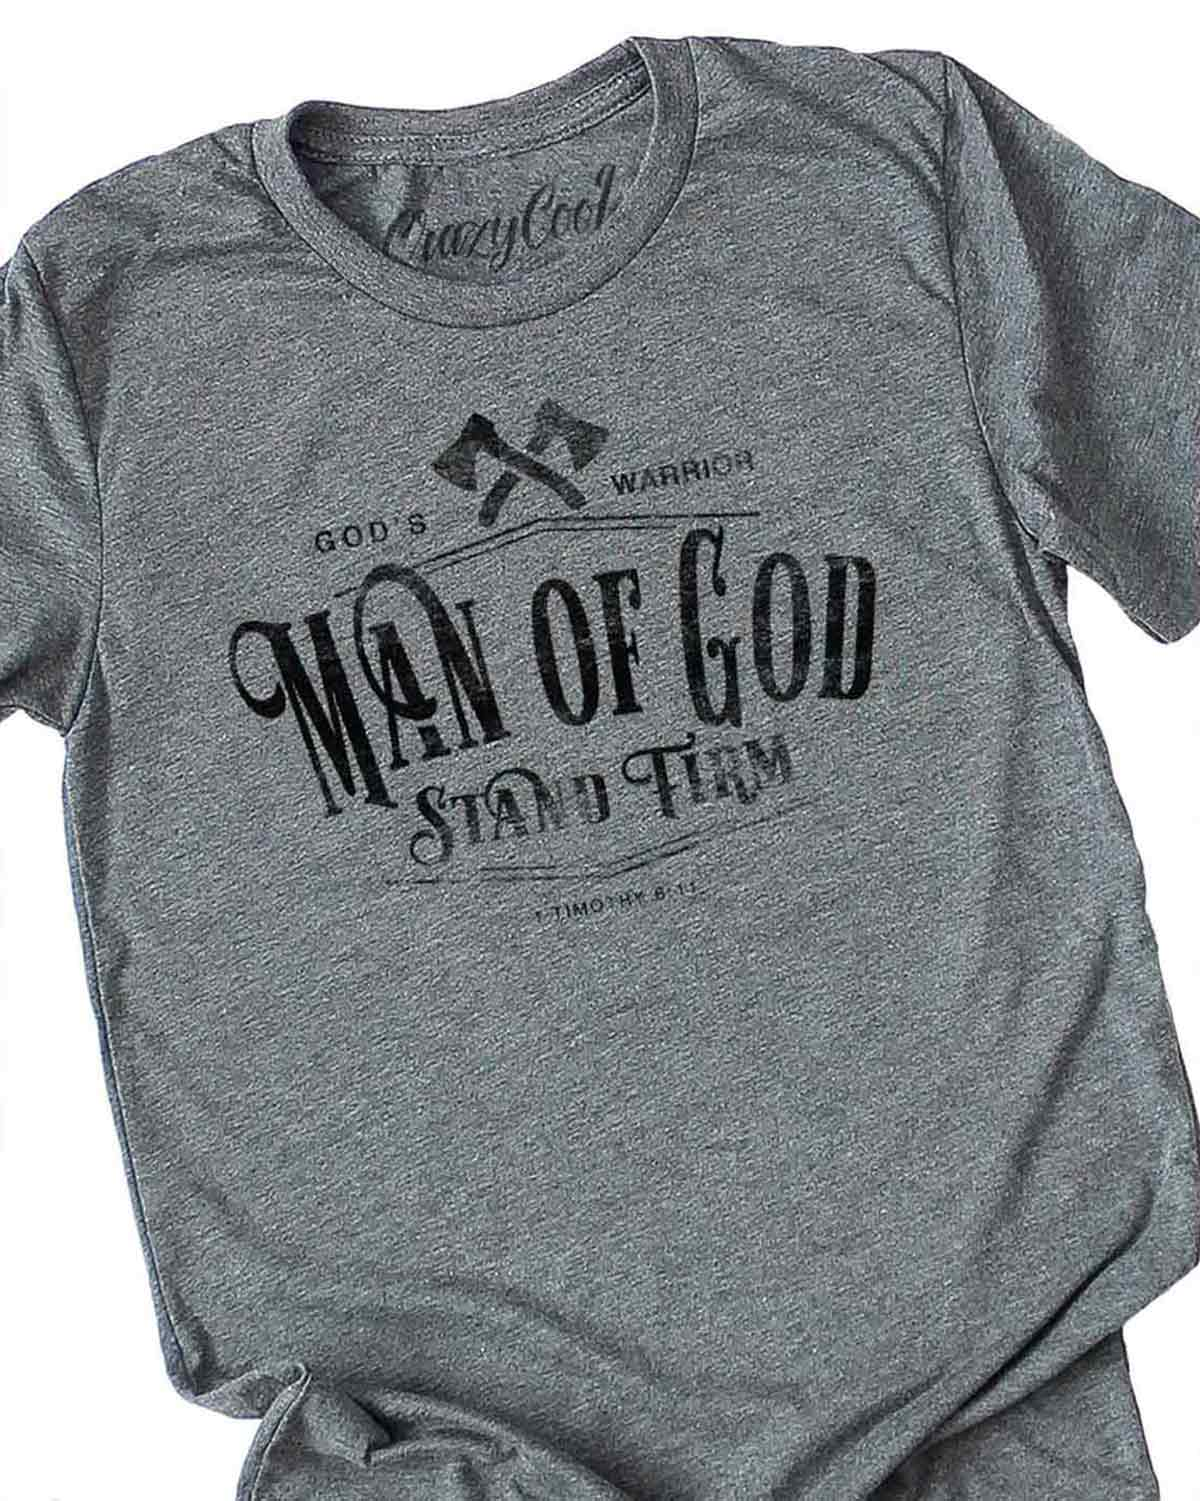 Man of God - Tee